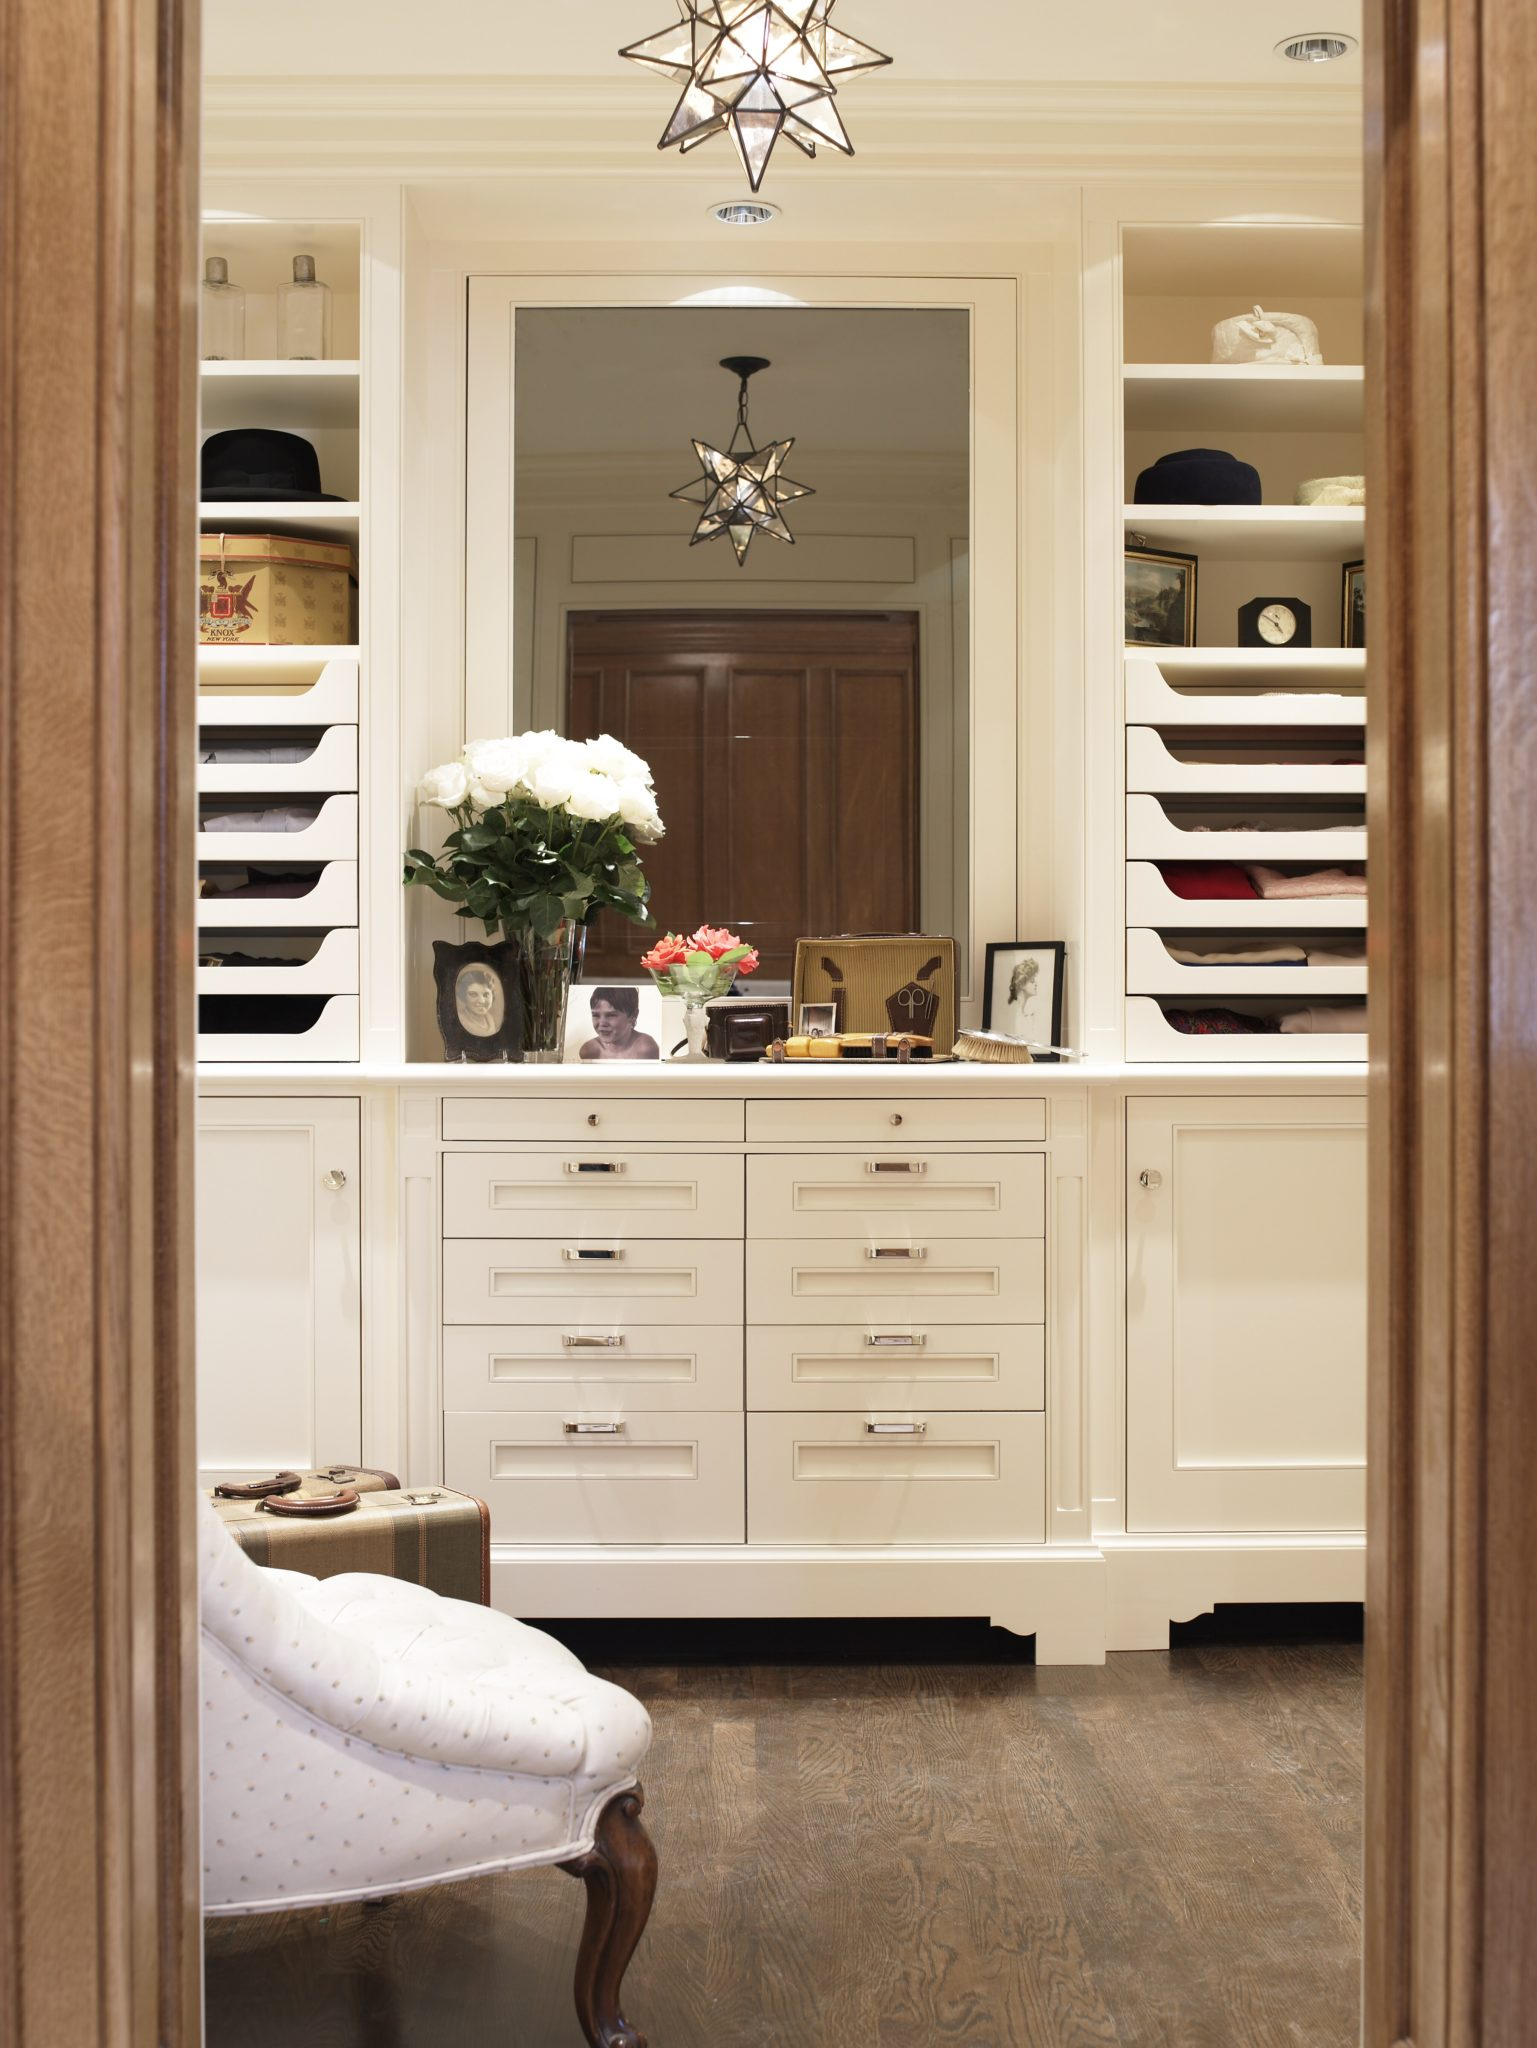 Attention to detail is key when designing a personal closet space. by Sarah Blank Design Studio